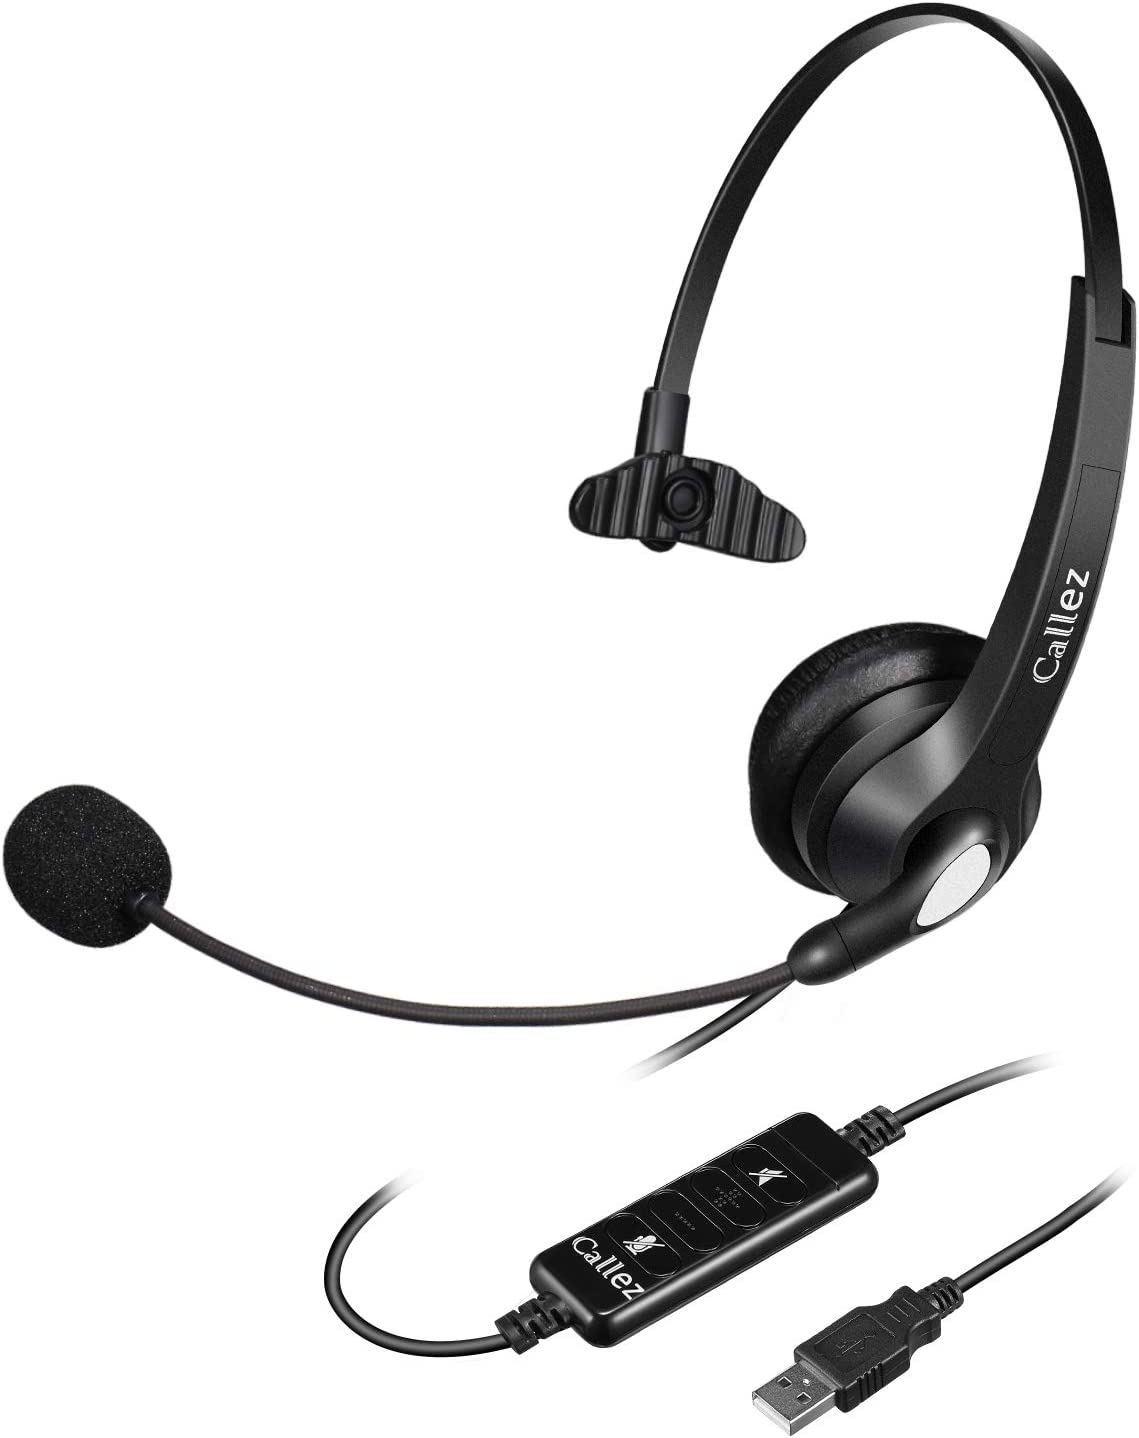 22H Talk Time CVC8.0 Noise Canceling USB Headphones Soulsens Computer Headset with Dual-Mic Skype Comfort-Fit Business Headset for PC Office Cell Phone